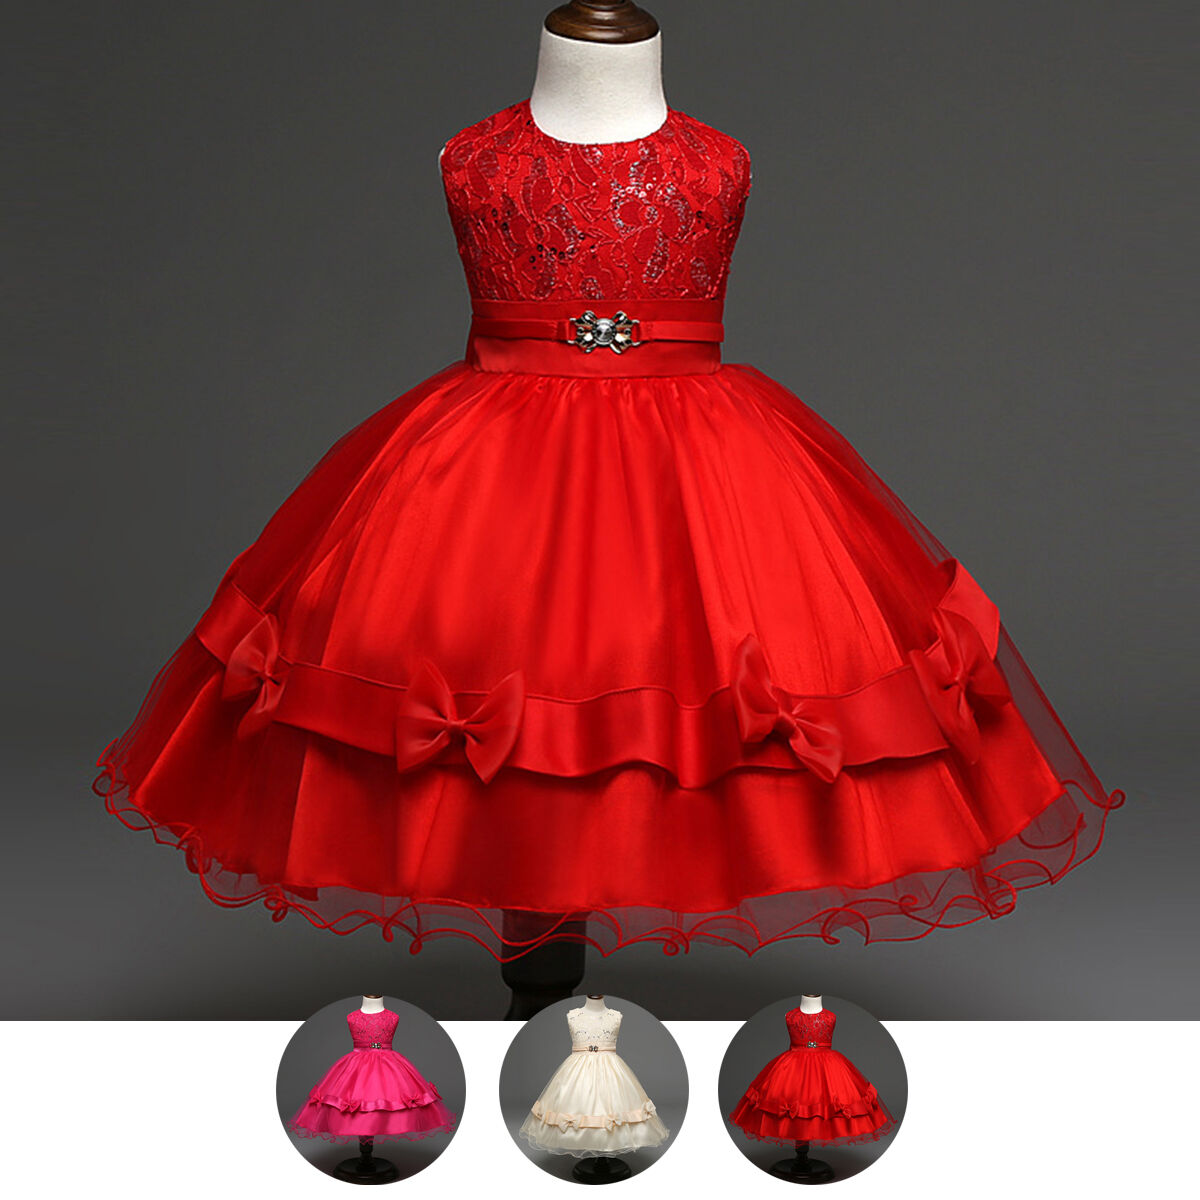 Pageant Flower Girl Kid Dress Toddler Wedding Bridesmaid Tutu Bows Gown For 2-5Y